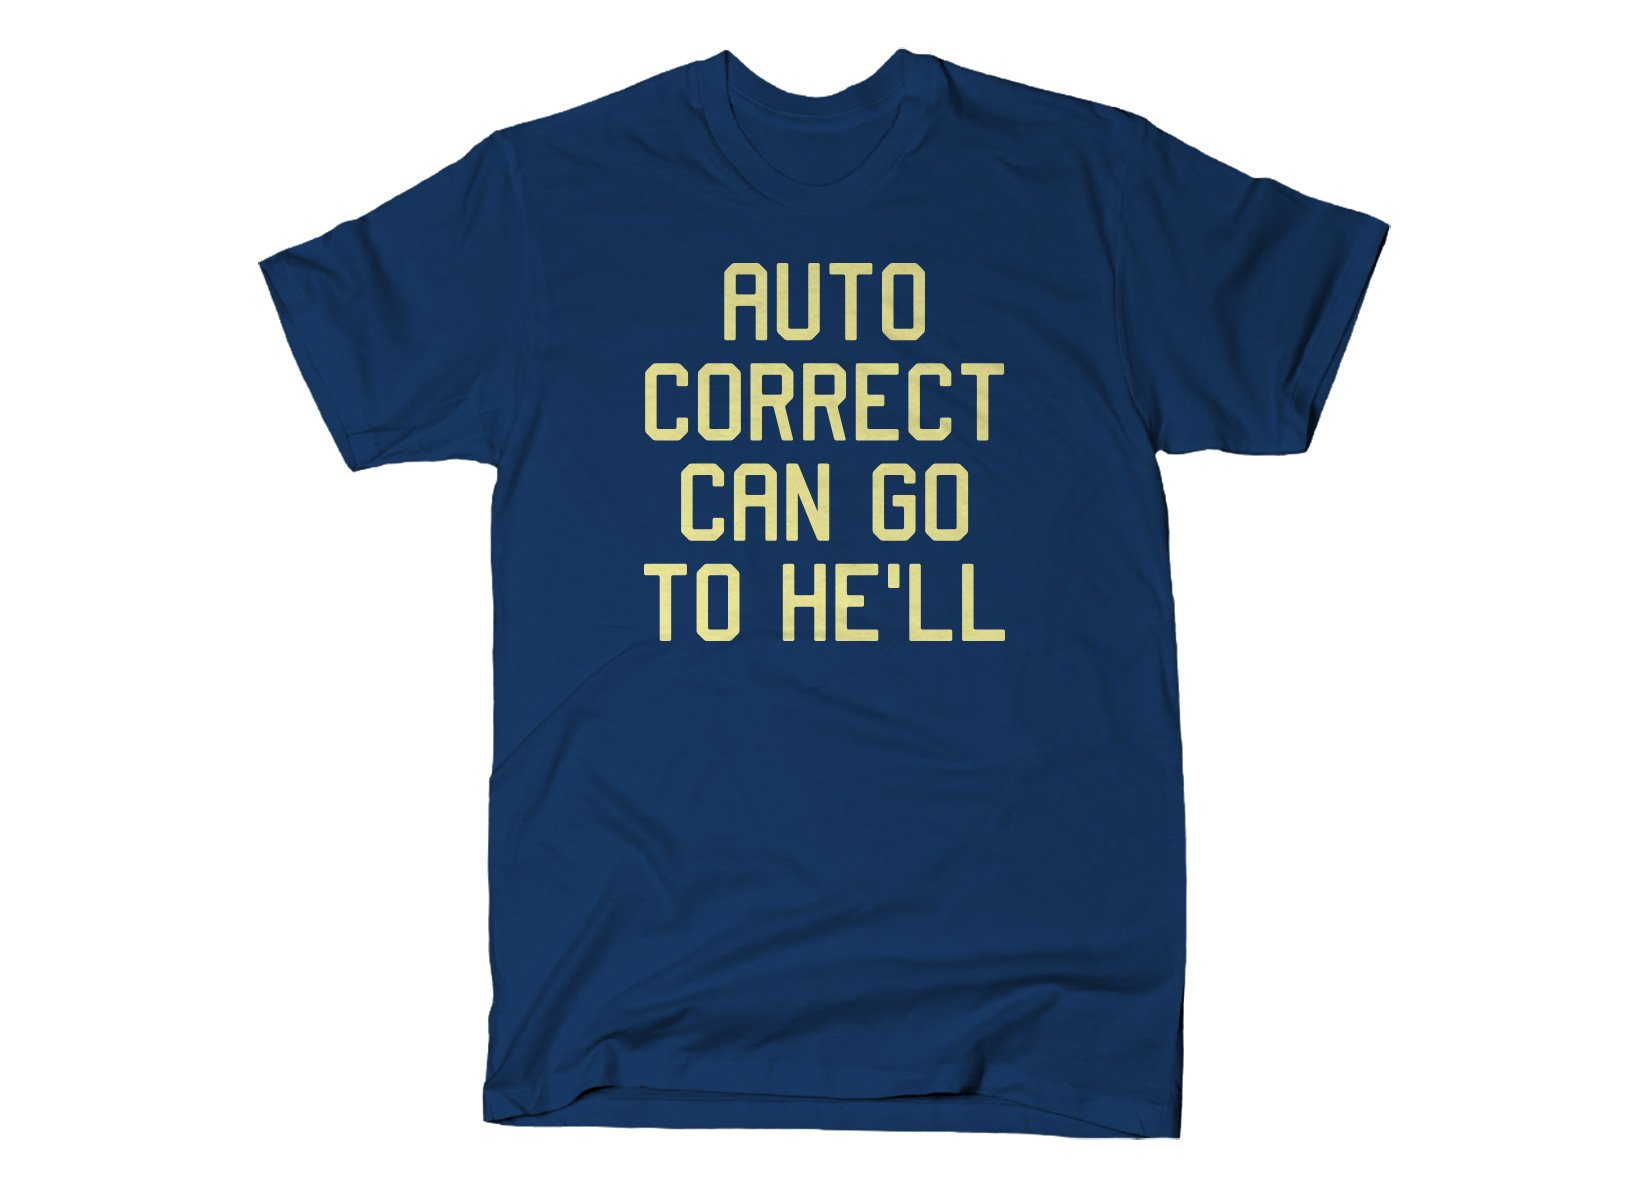 Auto Correct Can Go To He'll on Mens T-Shirt